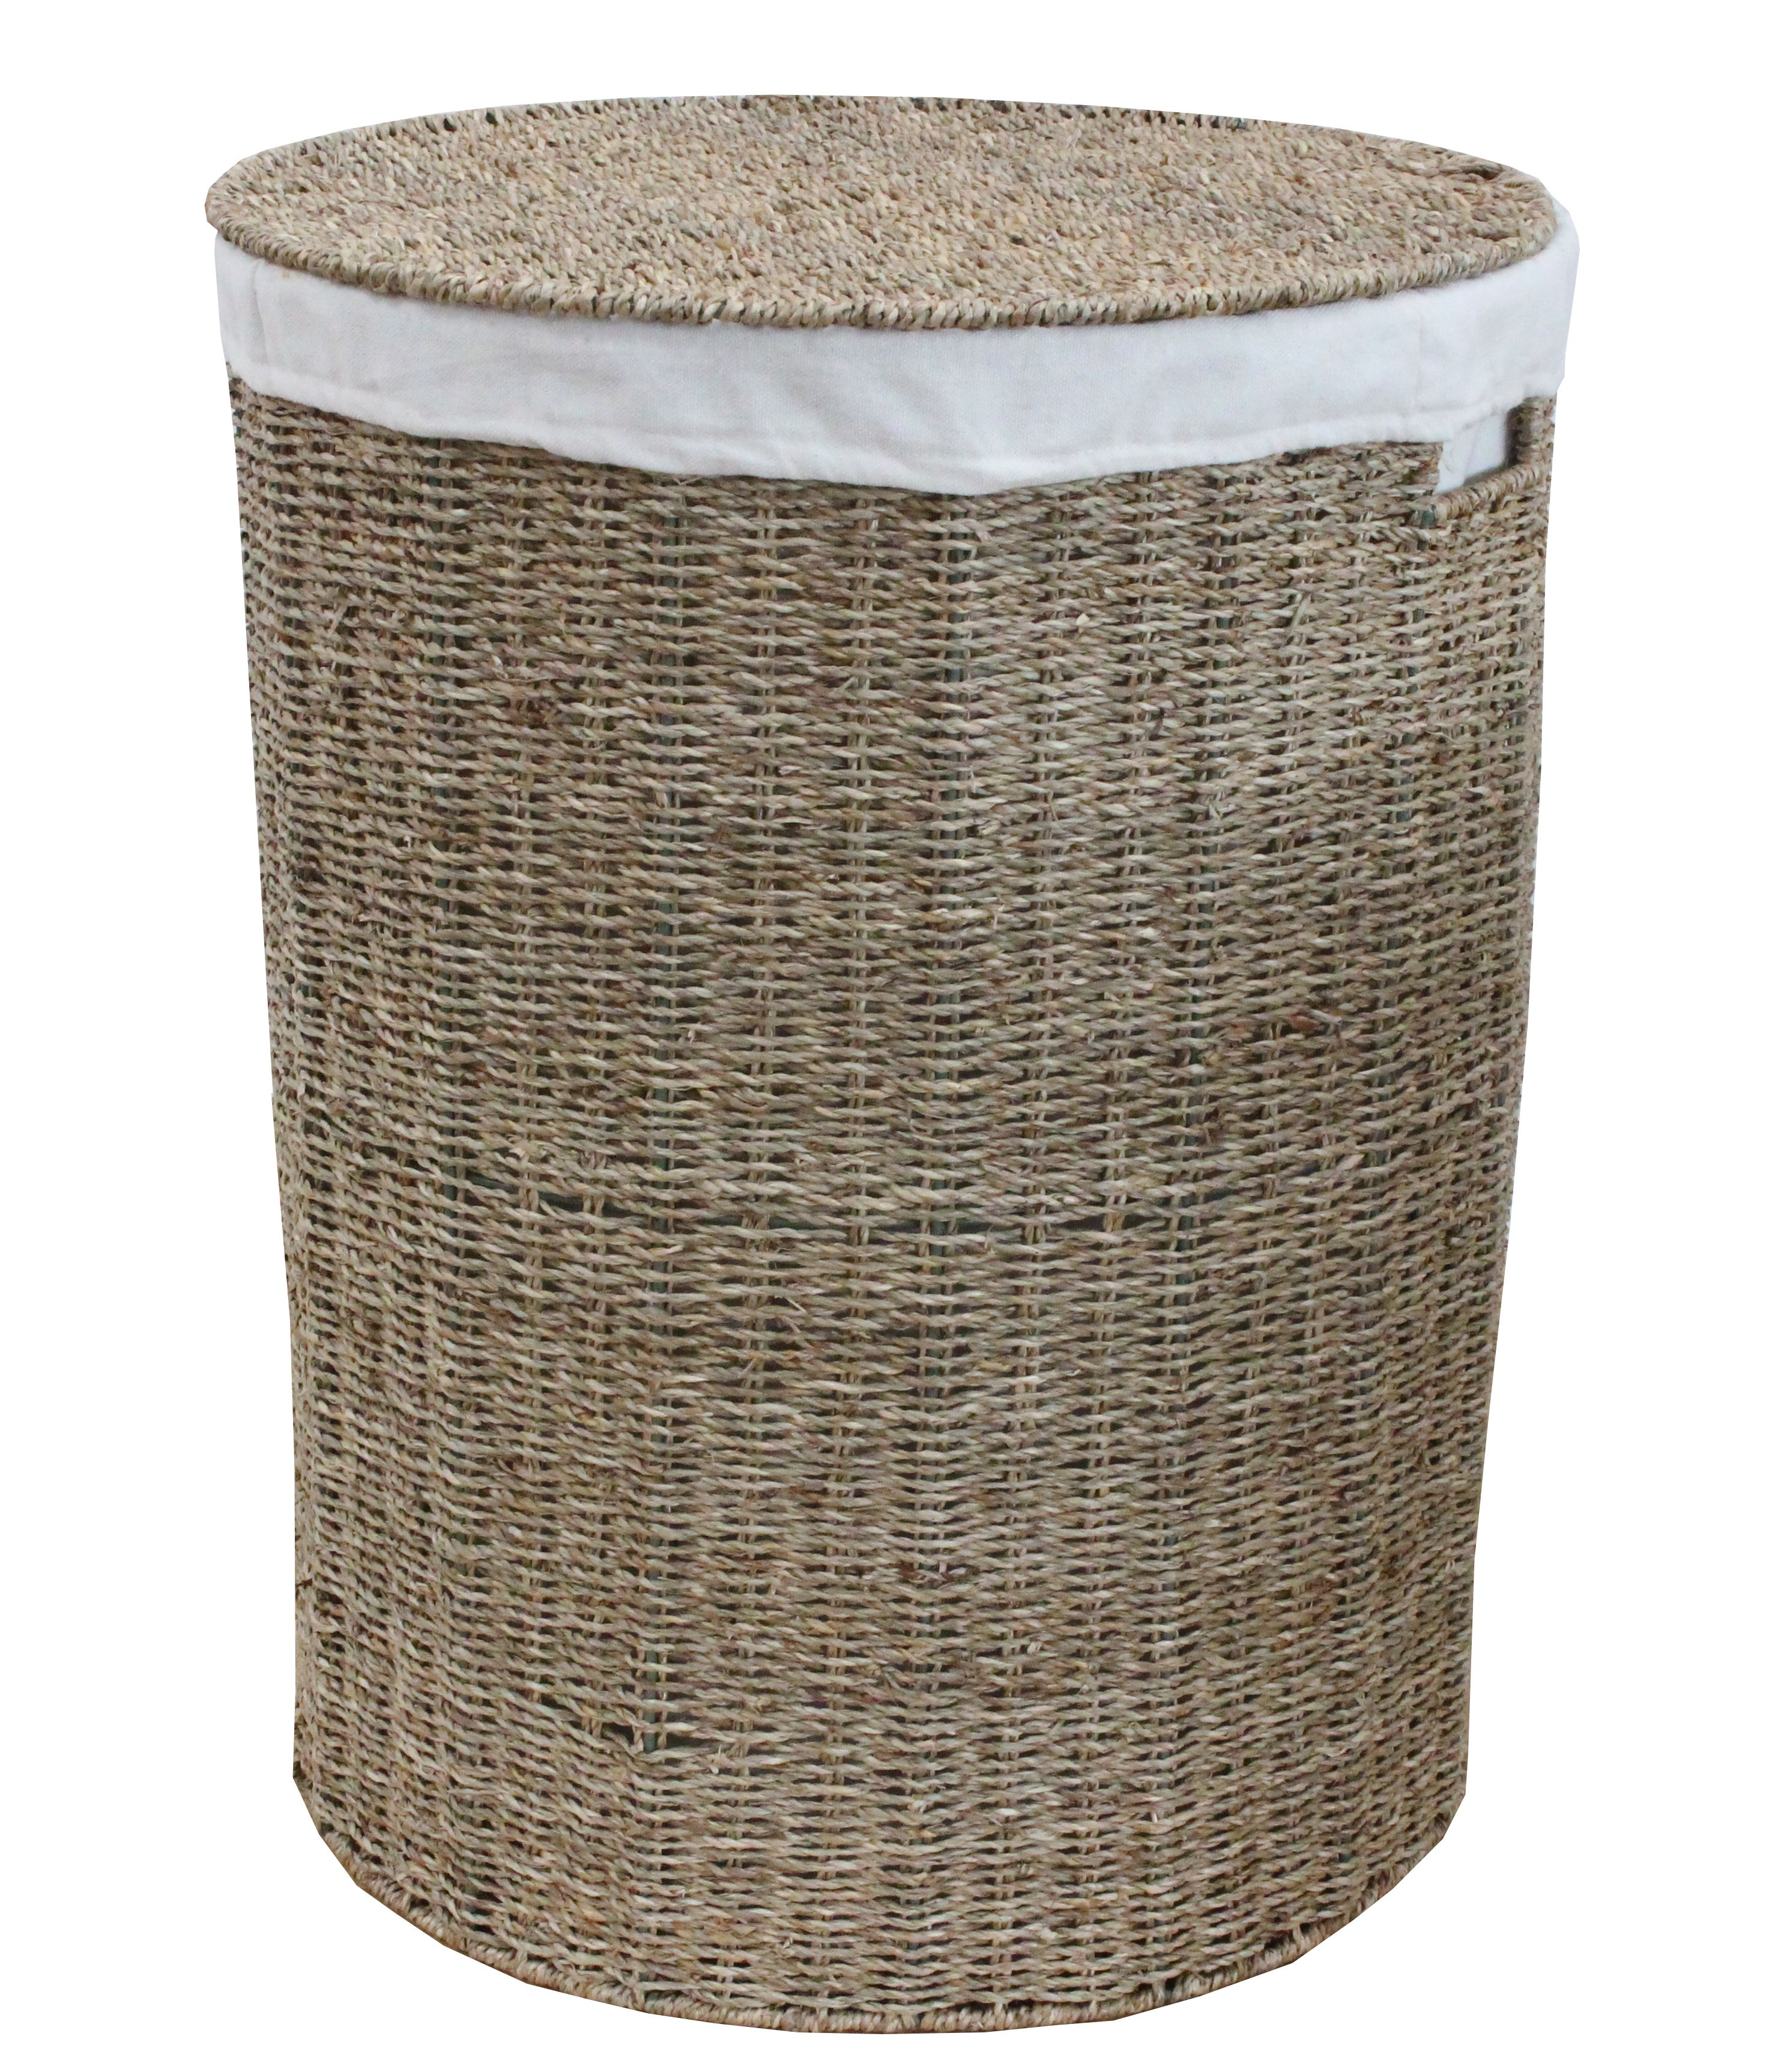 Seagrass Round Laundry Basket Lined Laundry Basket Washing Bins